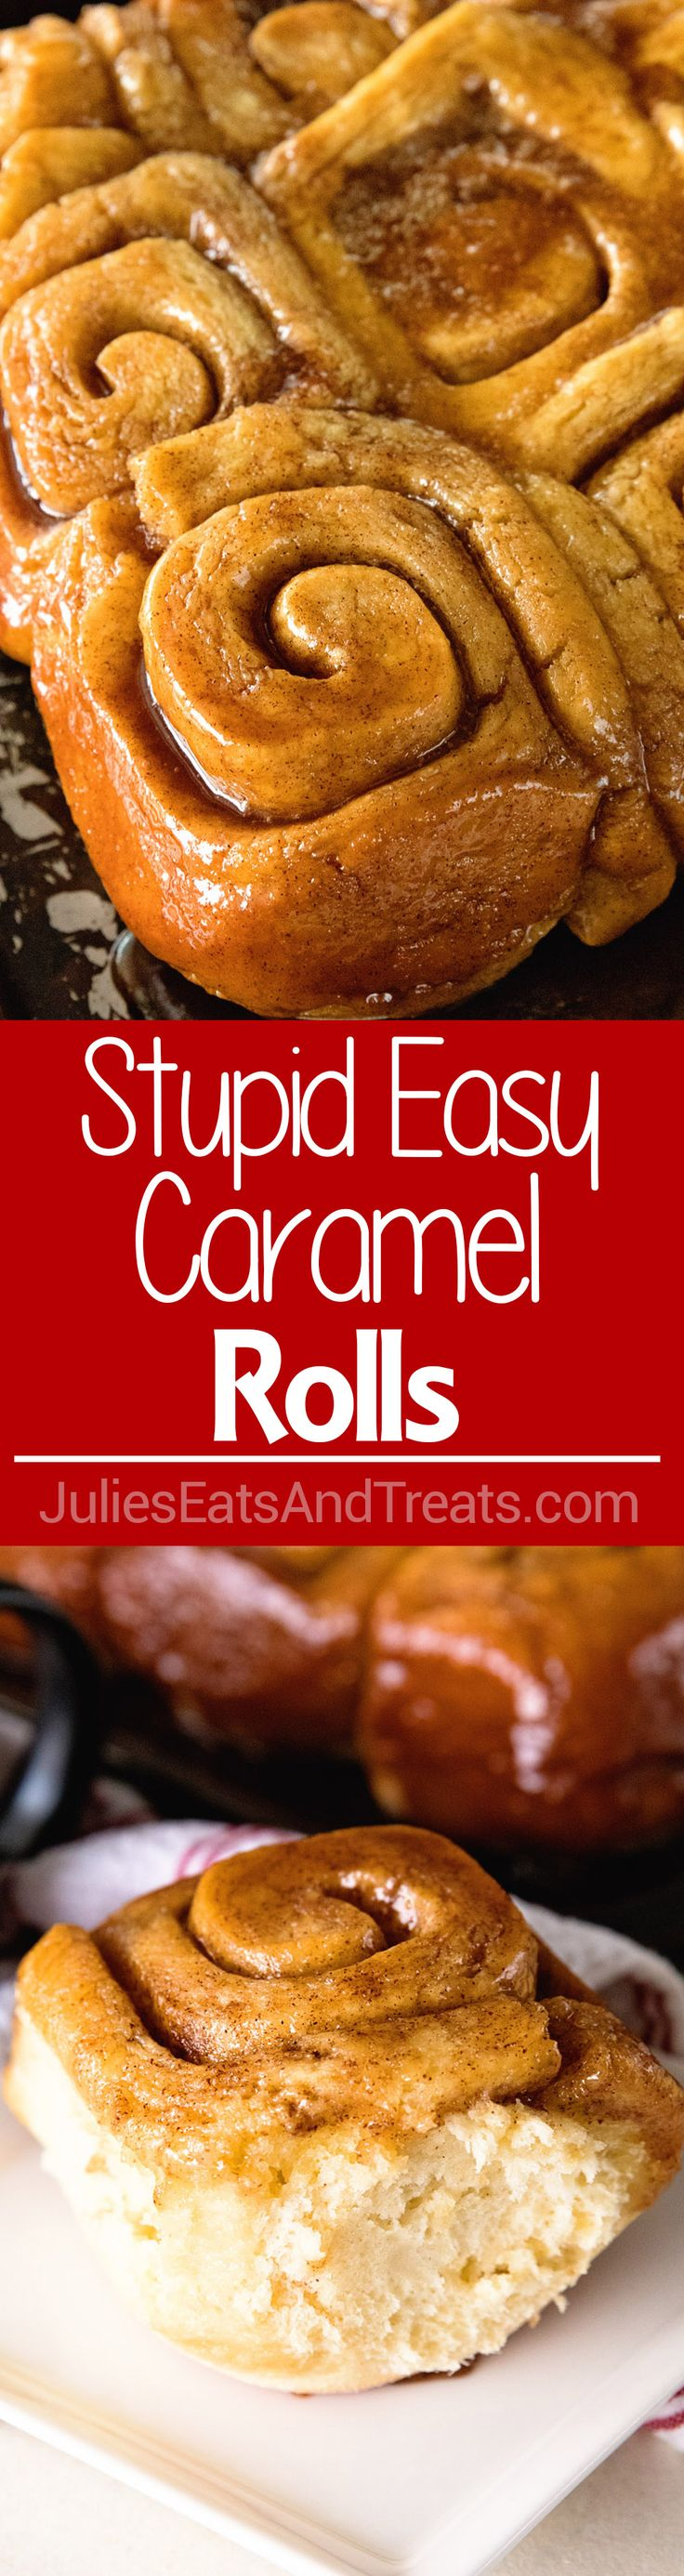 Stupid Easy Homemade Caramel Rolls ~ Fresh, Sticky Caramel Rolls That Are Fool Proof and Easy! Great for Beginners and Seasoned Bakers! ~ http://www.julieseatsandtreats.com